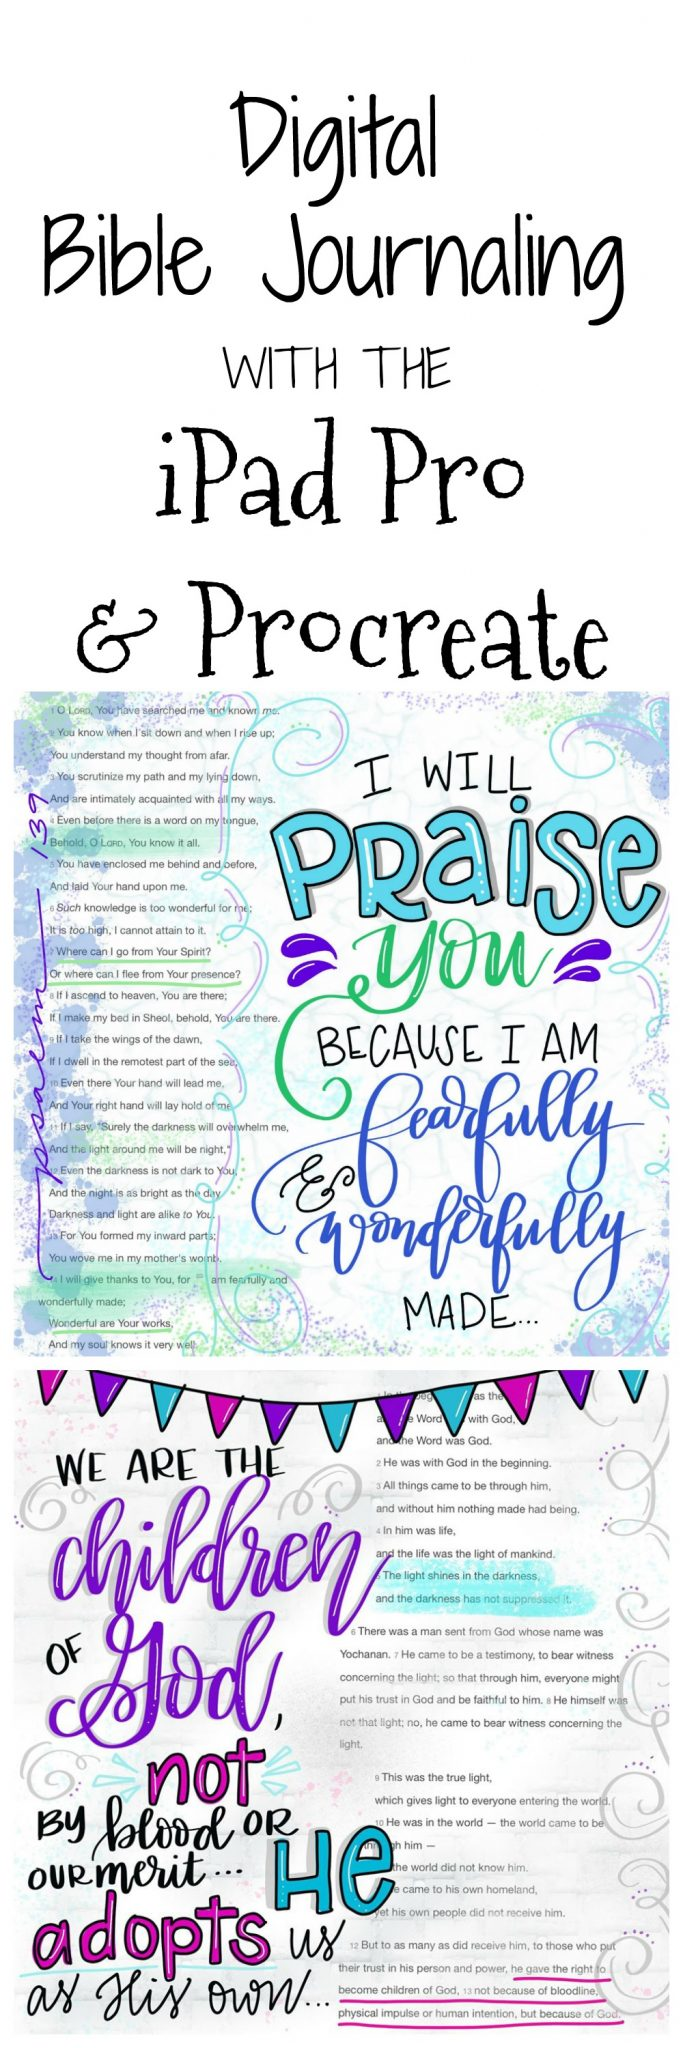 Digital Bible Journaling with the iPad Pro